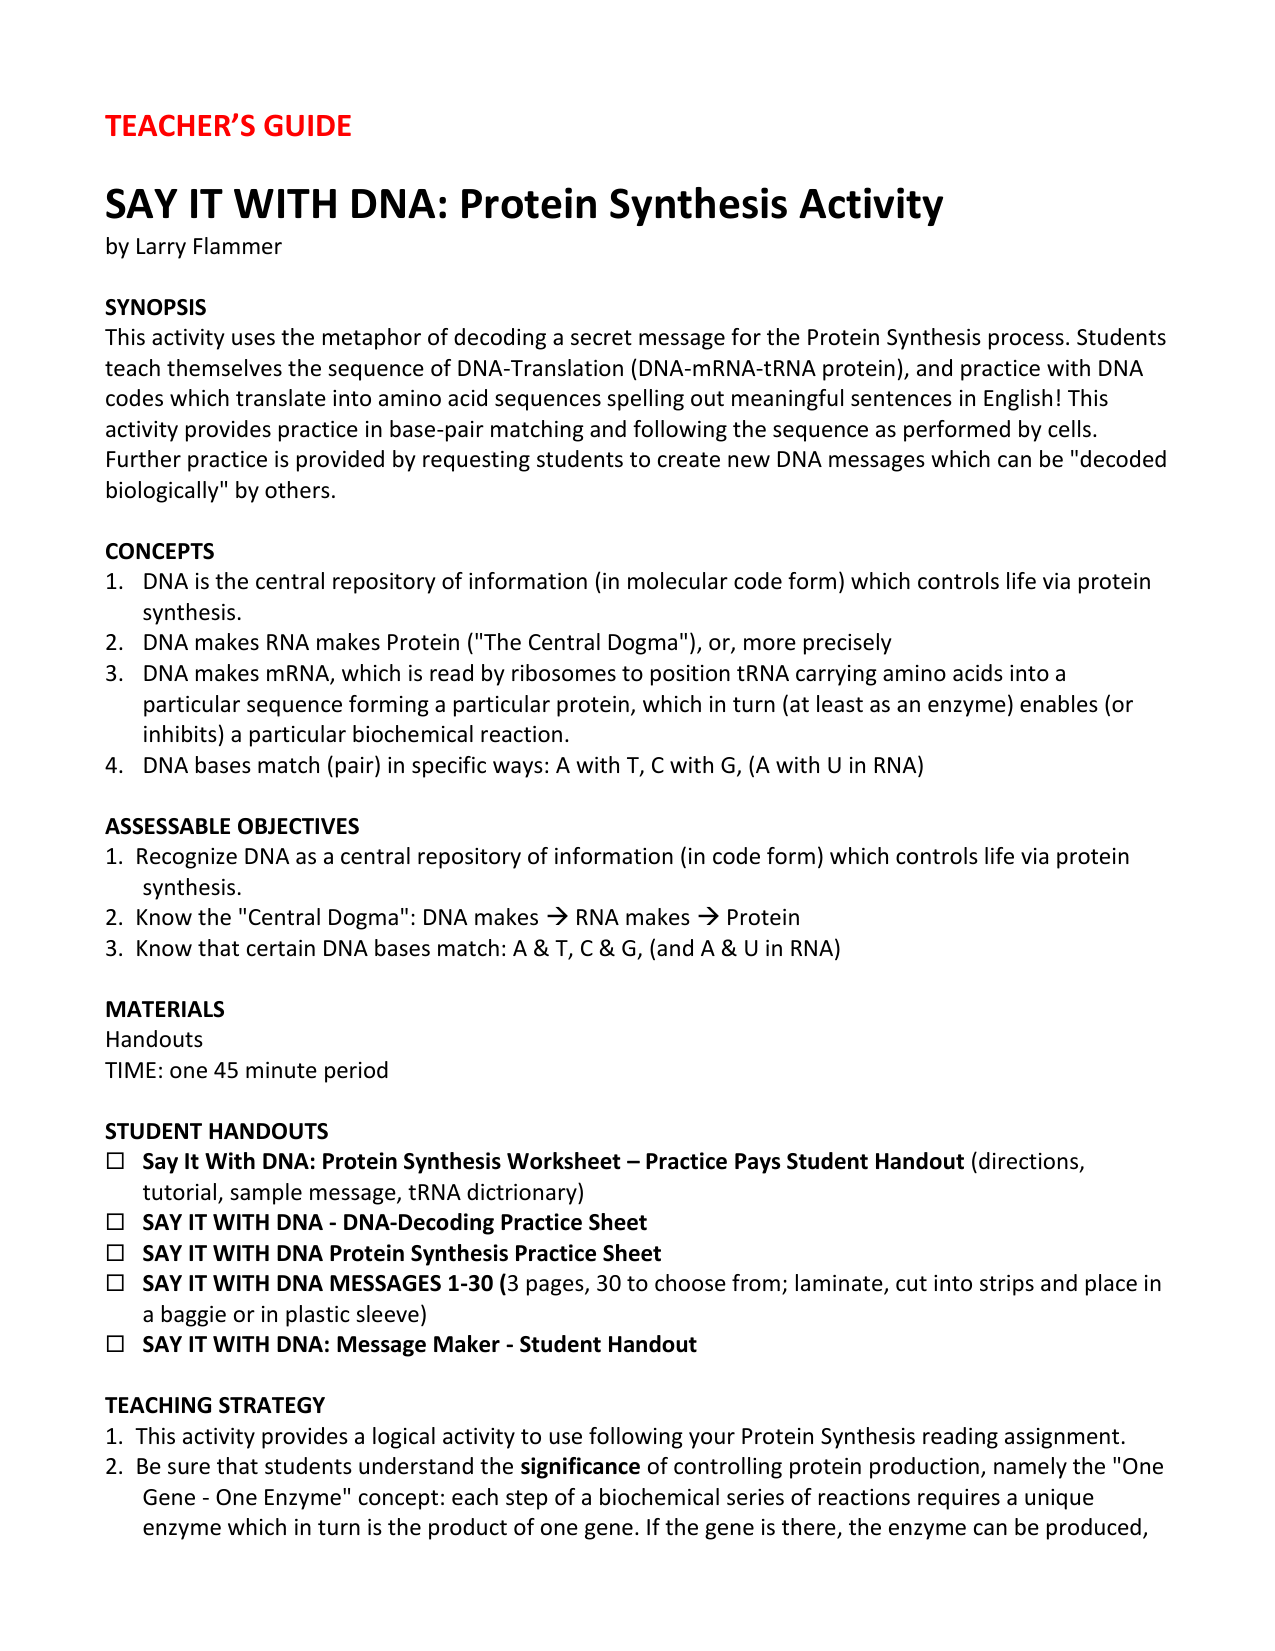 Worksheets Protein Synthesis Worksheet say it with dna protein synthesis worksheet practice